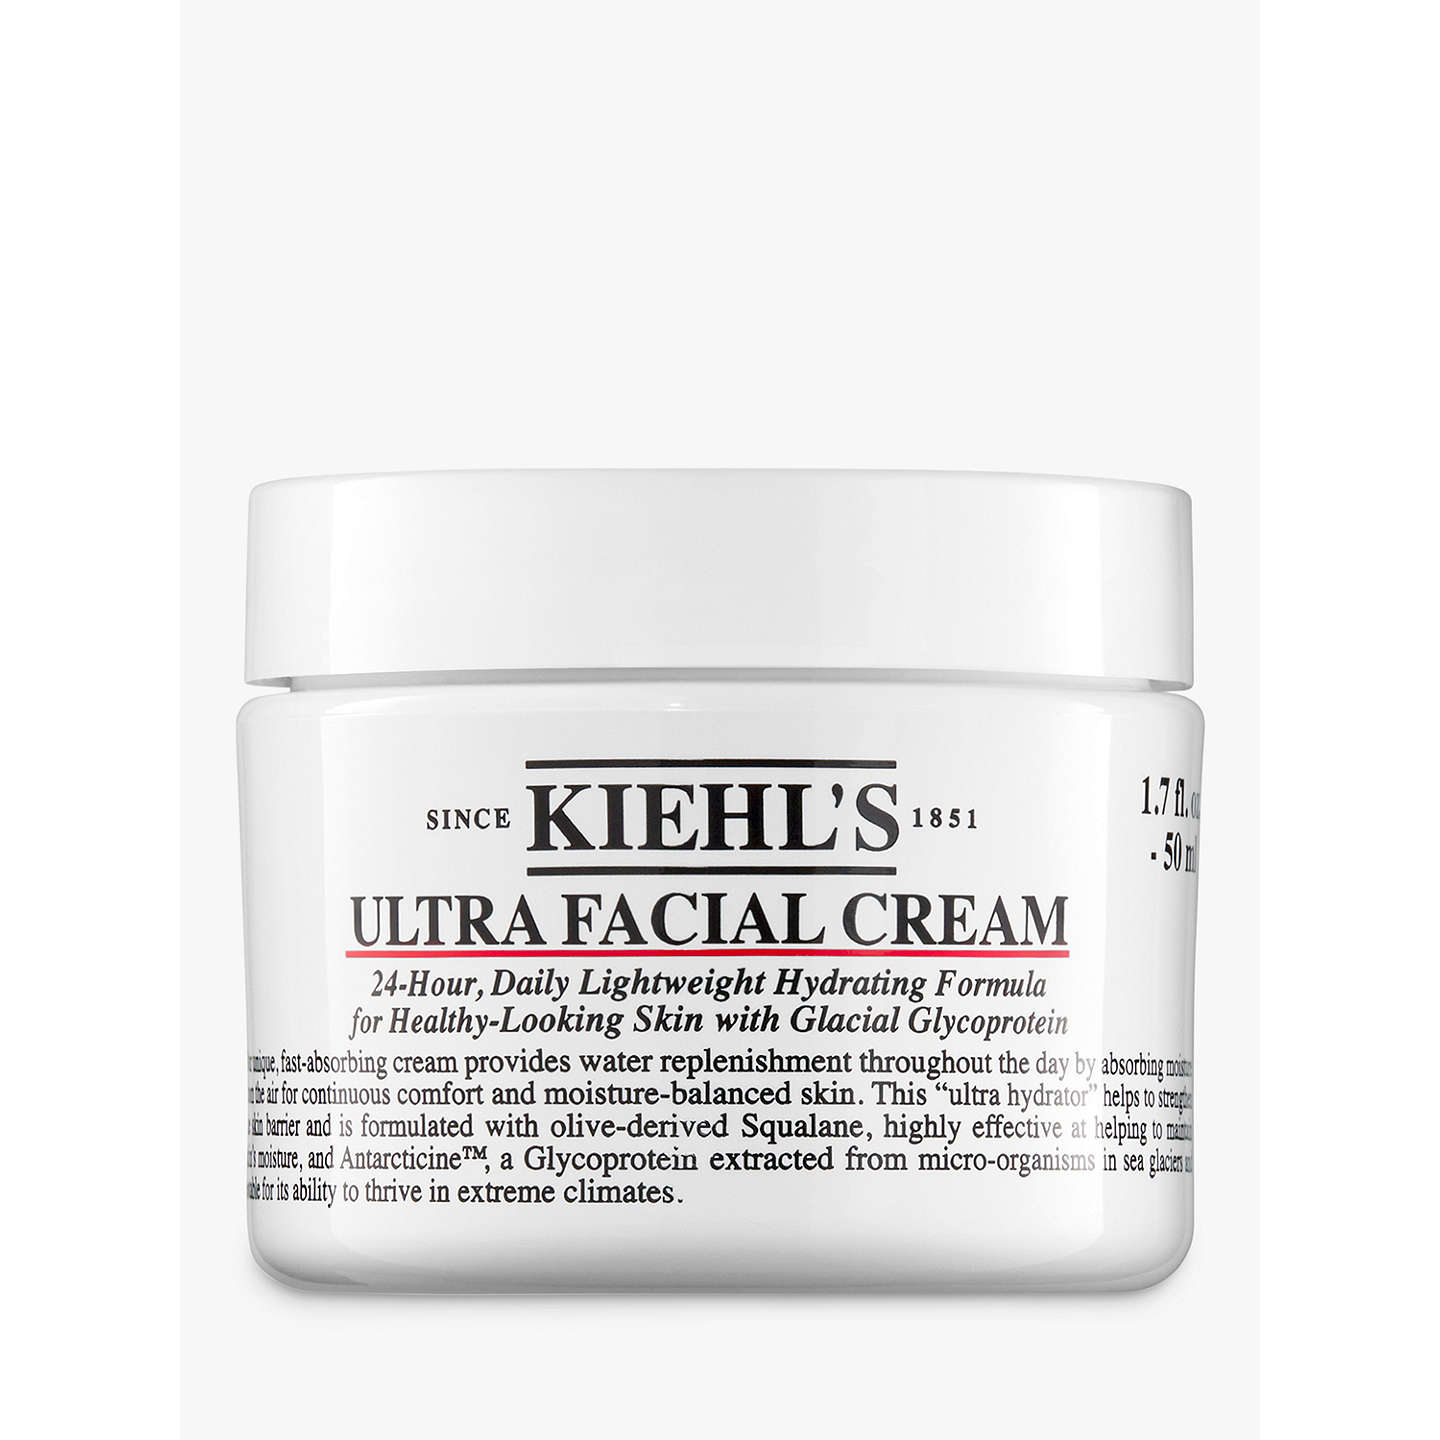 BuyKiehl's Ultra Facial Cream, 50ml Online at johnlewis.com